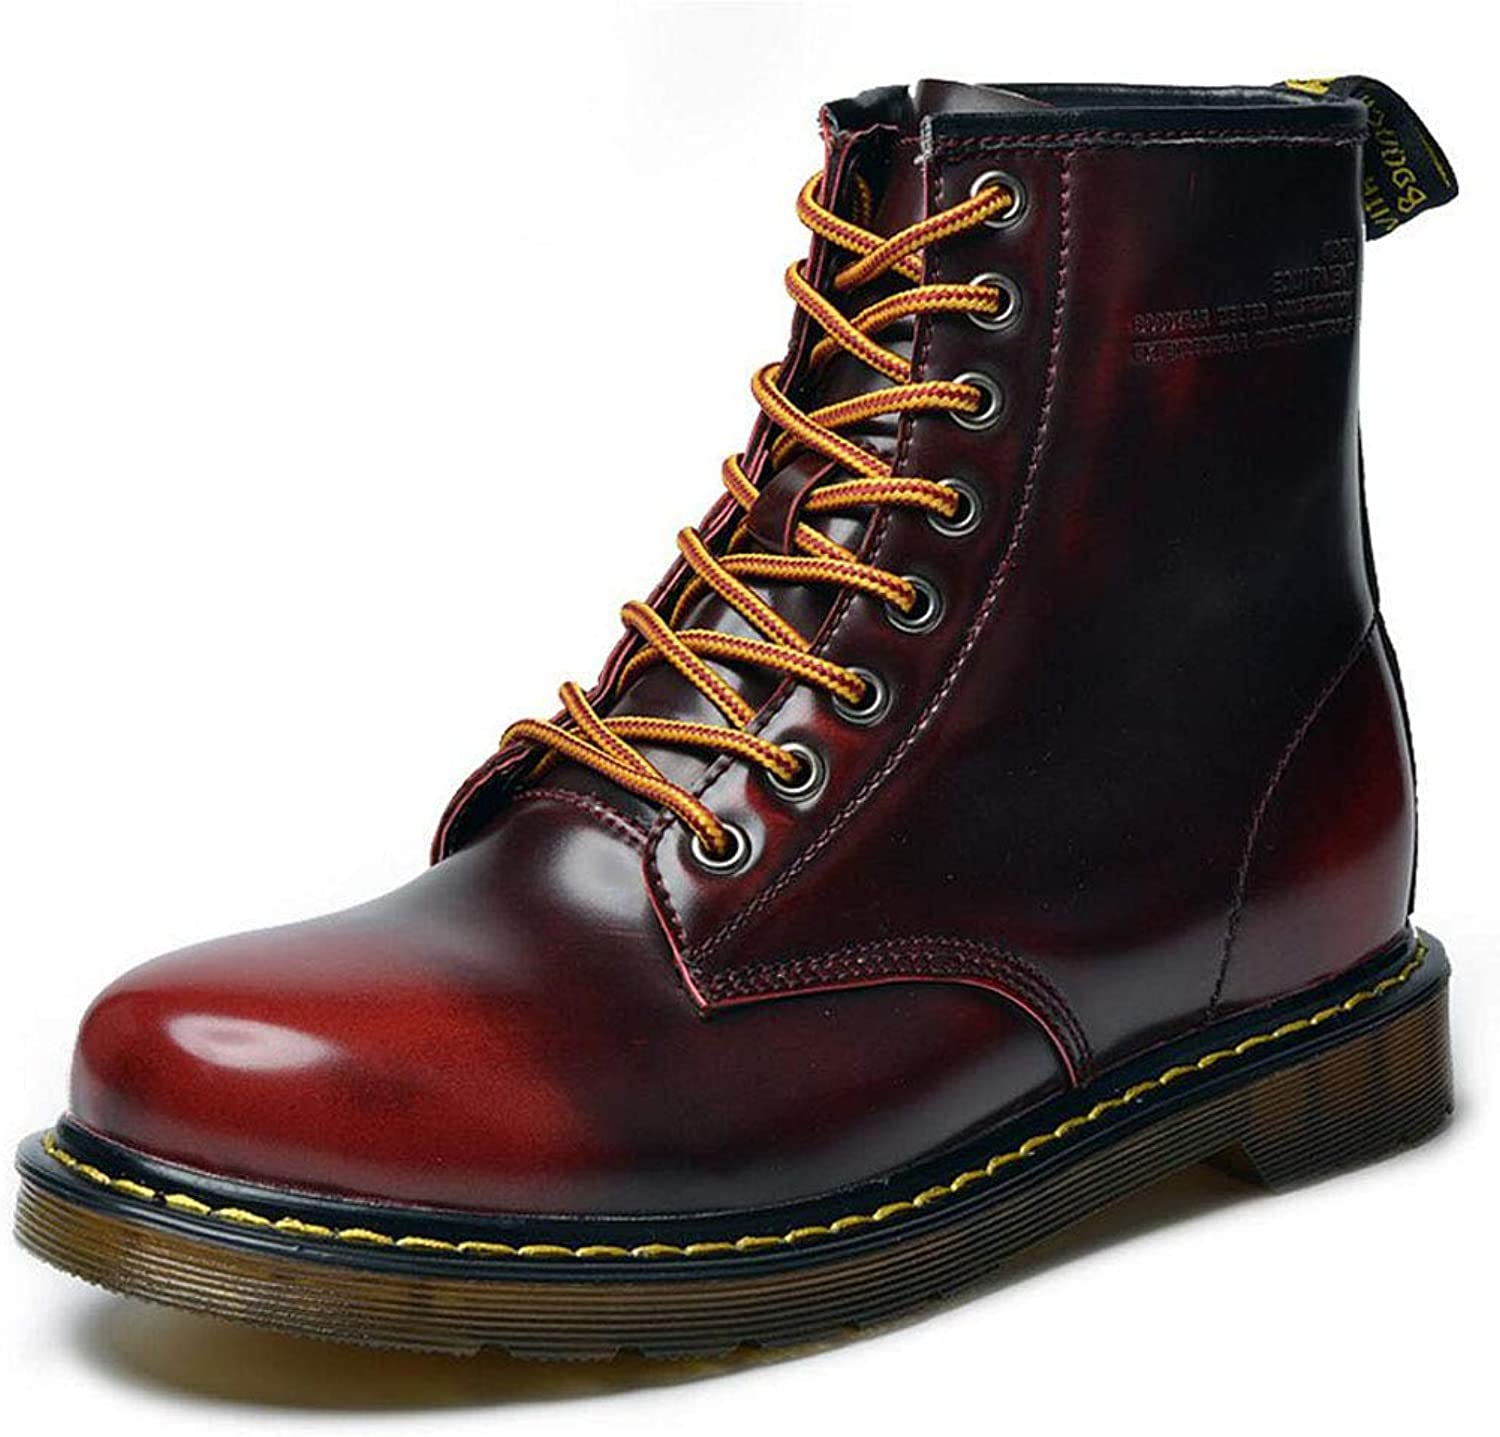 Zxcvb High-top Men's Knight Boots Men's Leather Boots Big Head Tooling shoes Autumn Winter